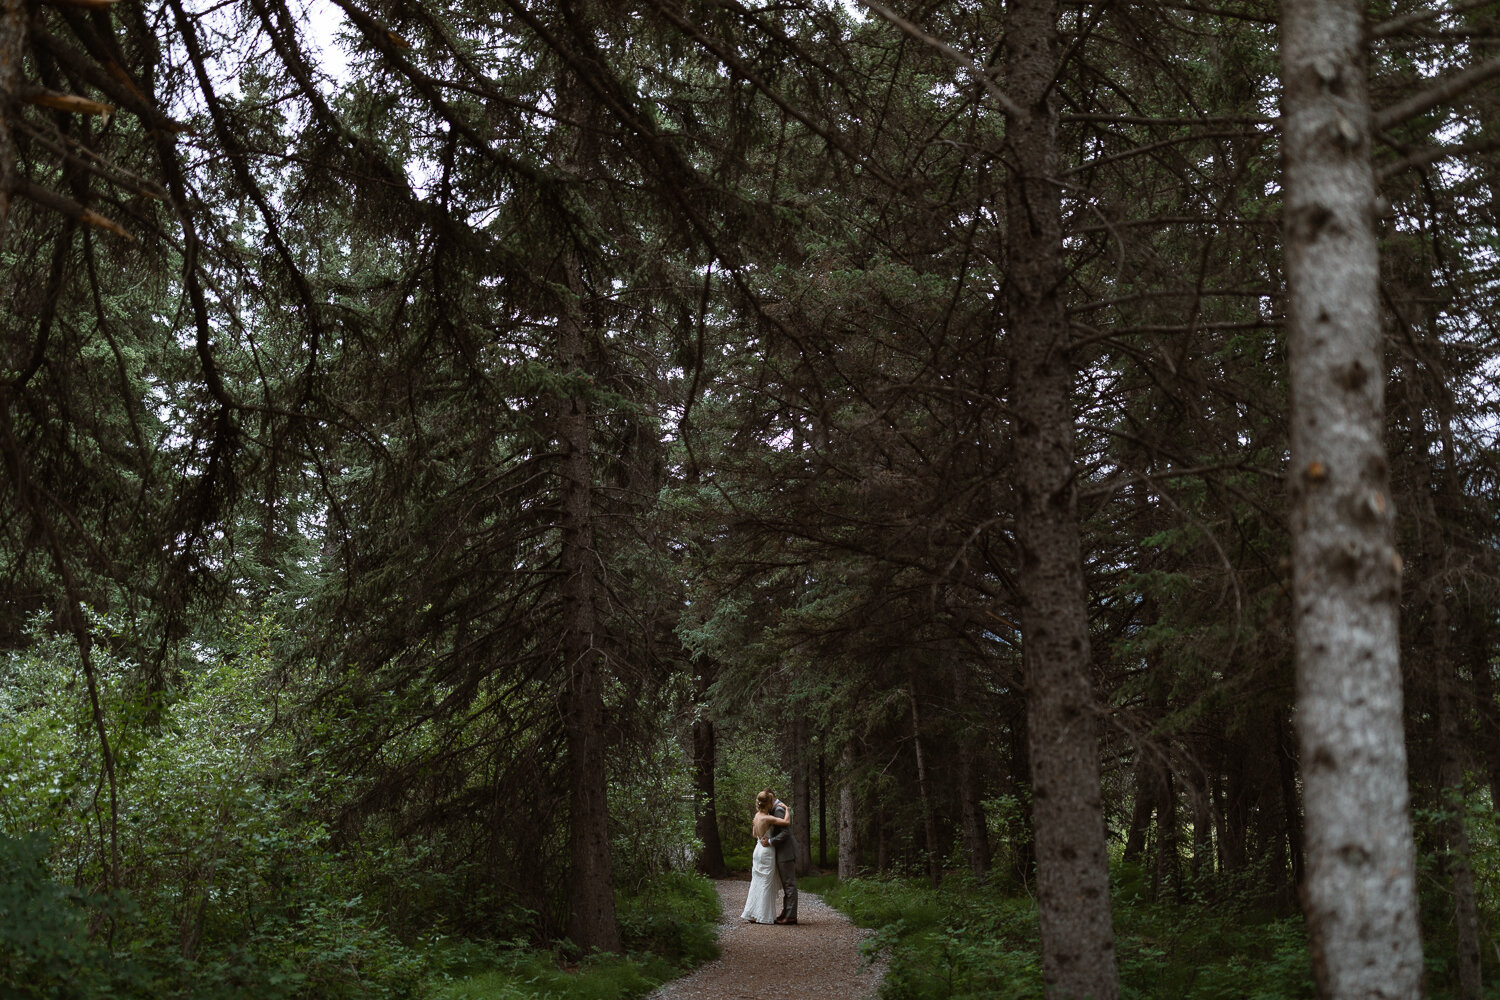 44-Canmore-Alberta-Real-Wedding-Best-Wedding-Photographers-56.JPG